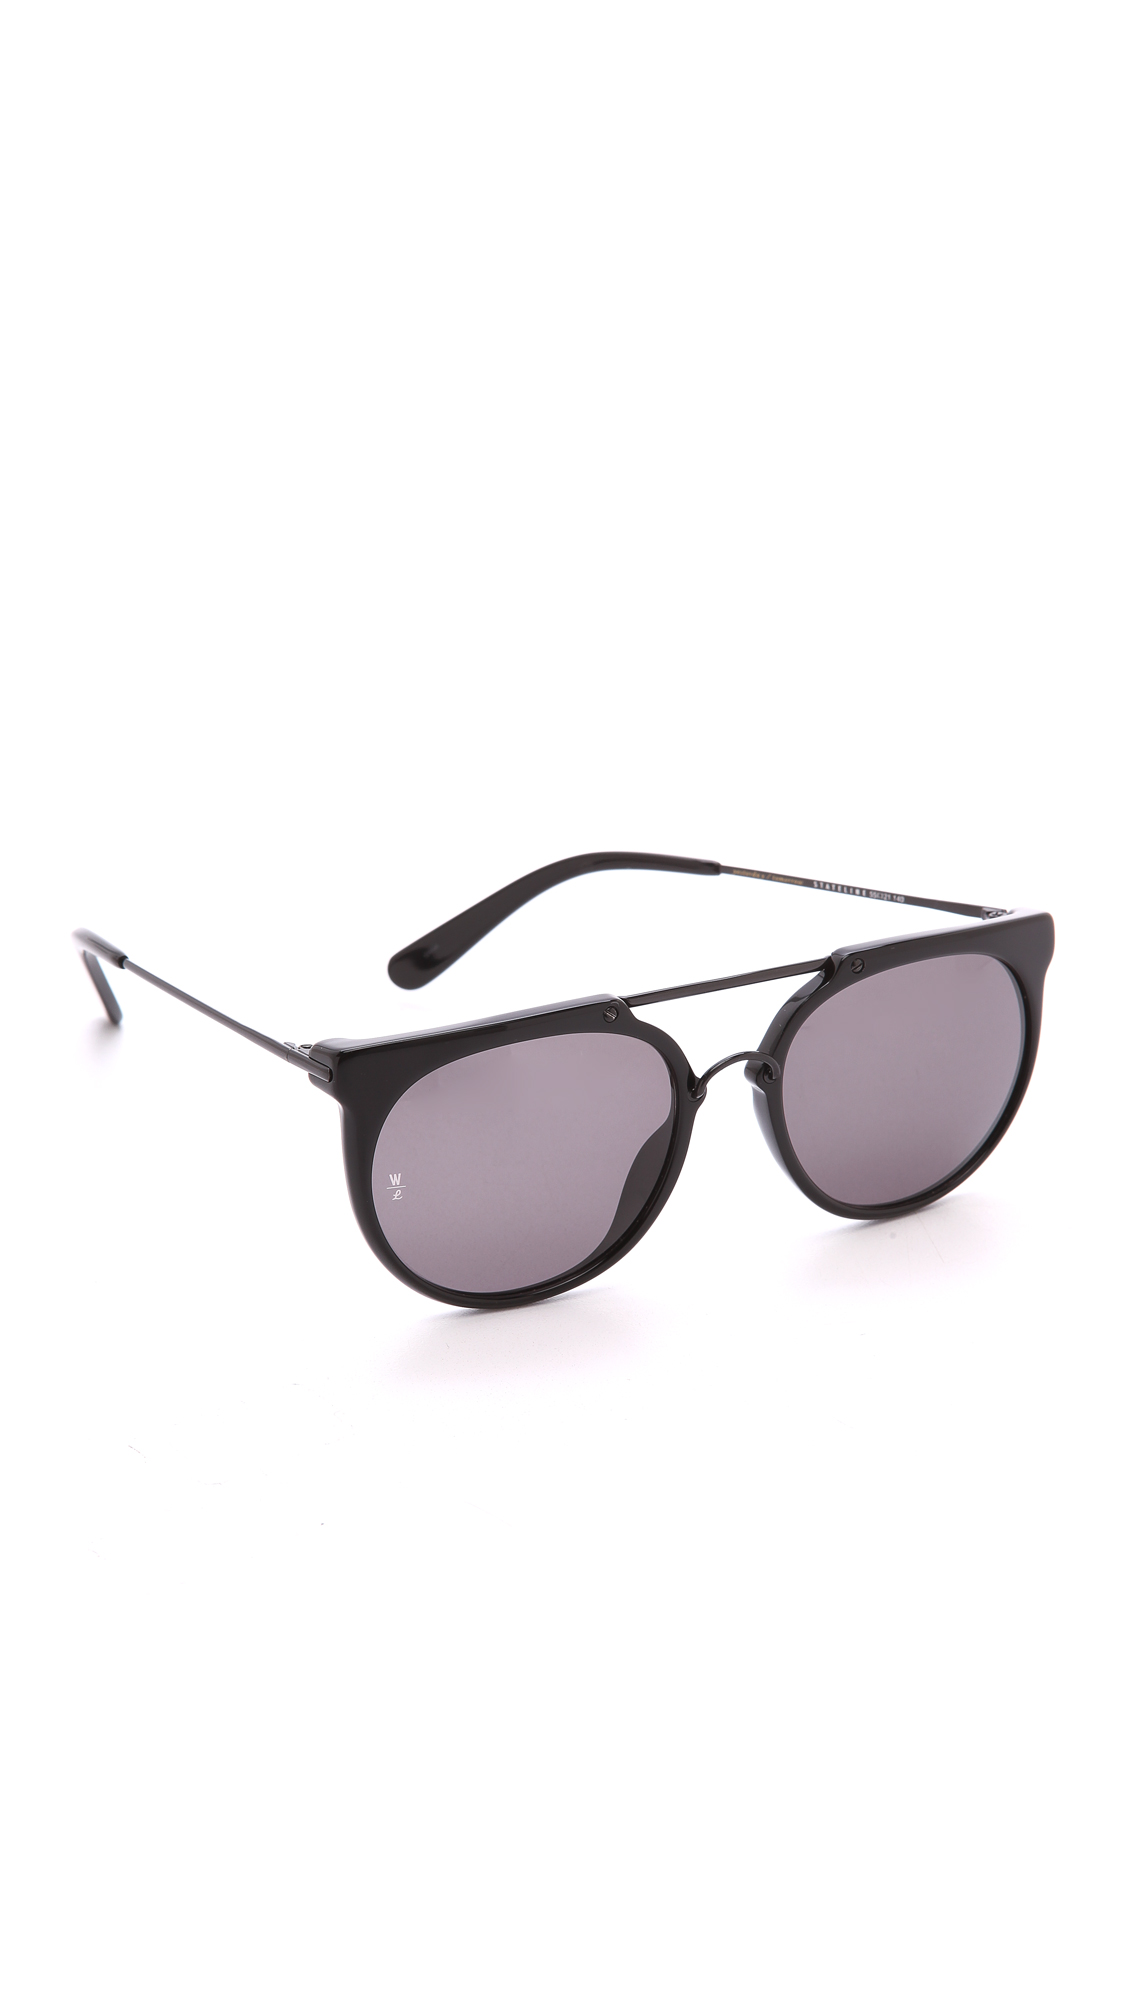 Wonderland Stateline Sunglasses | SHOPBOP